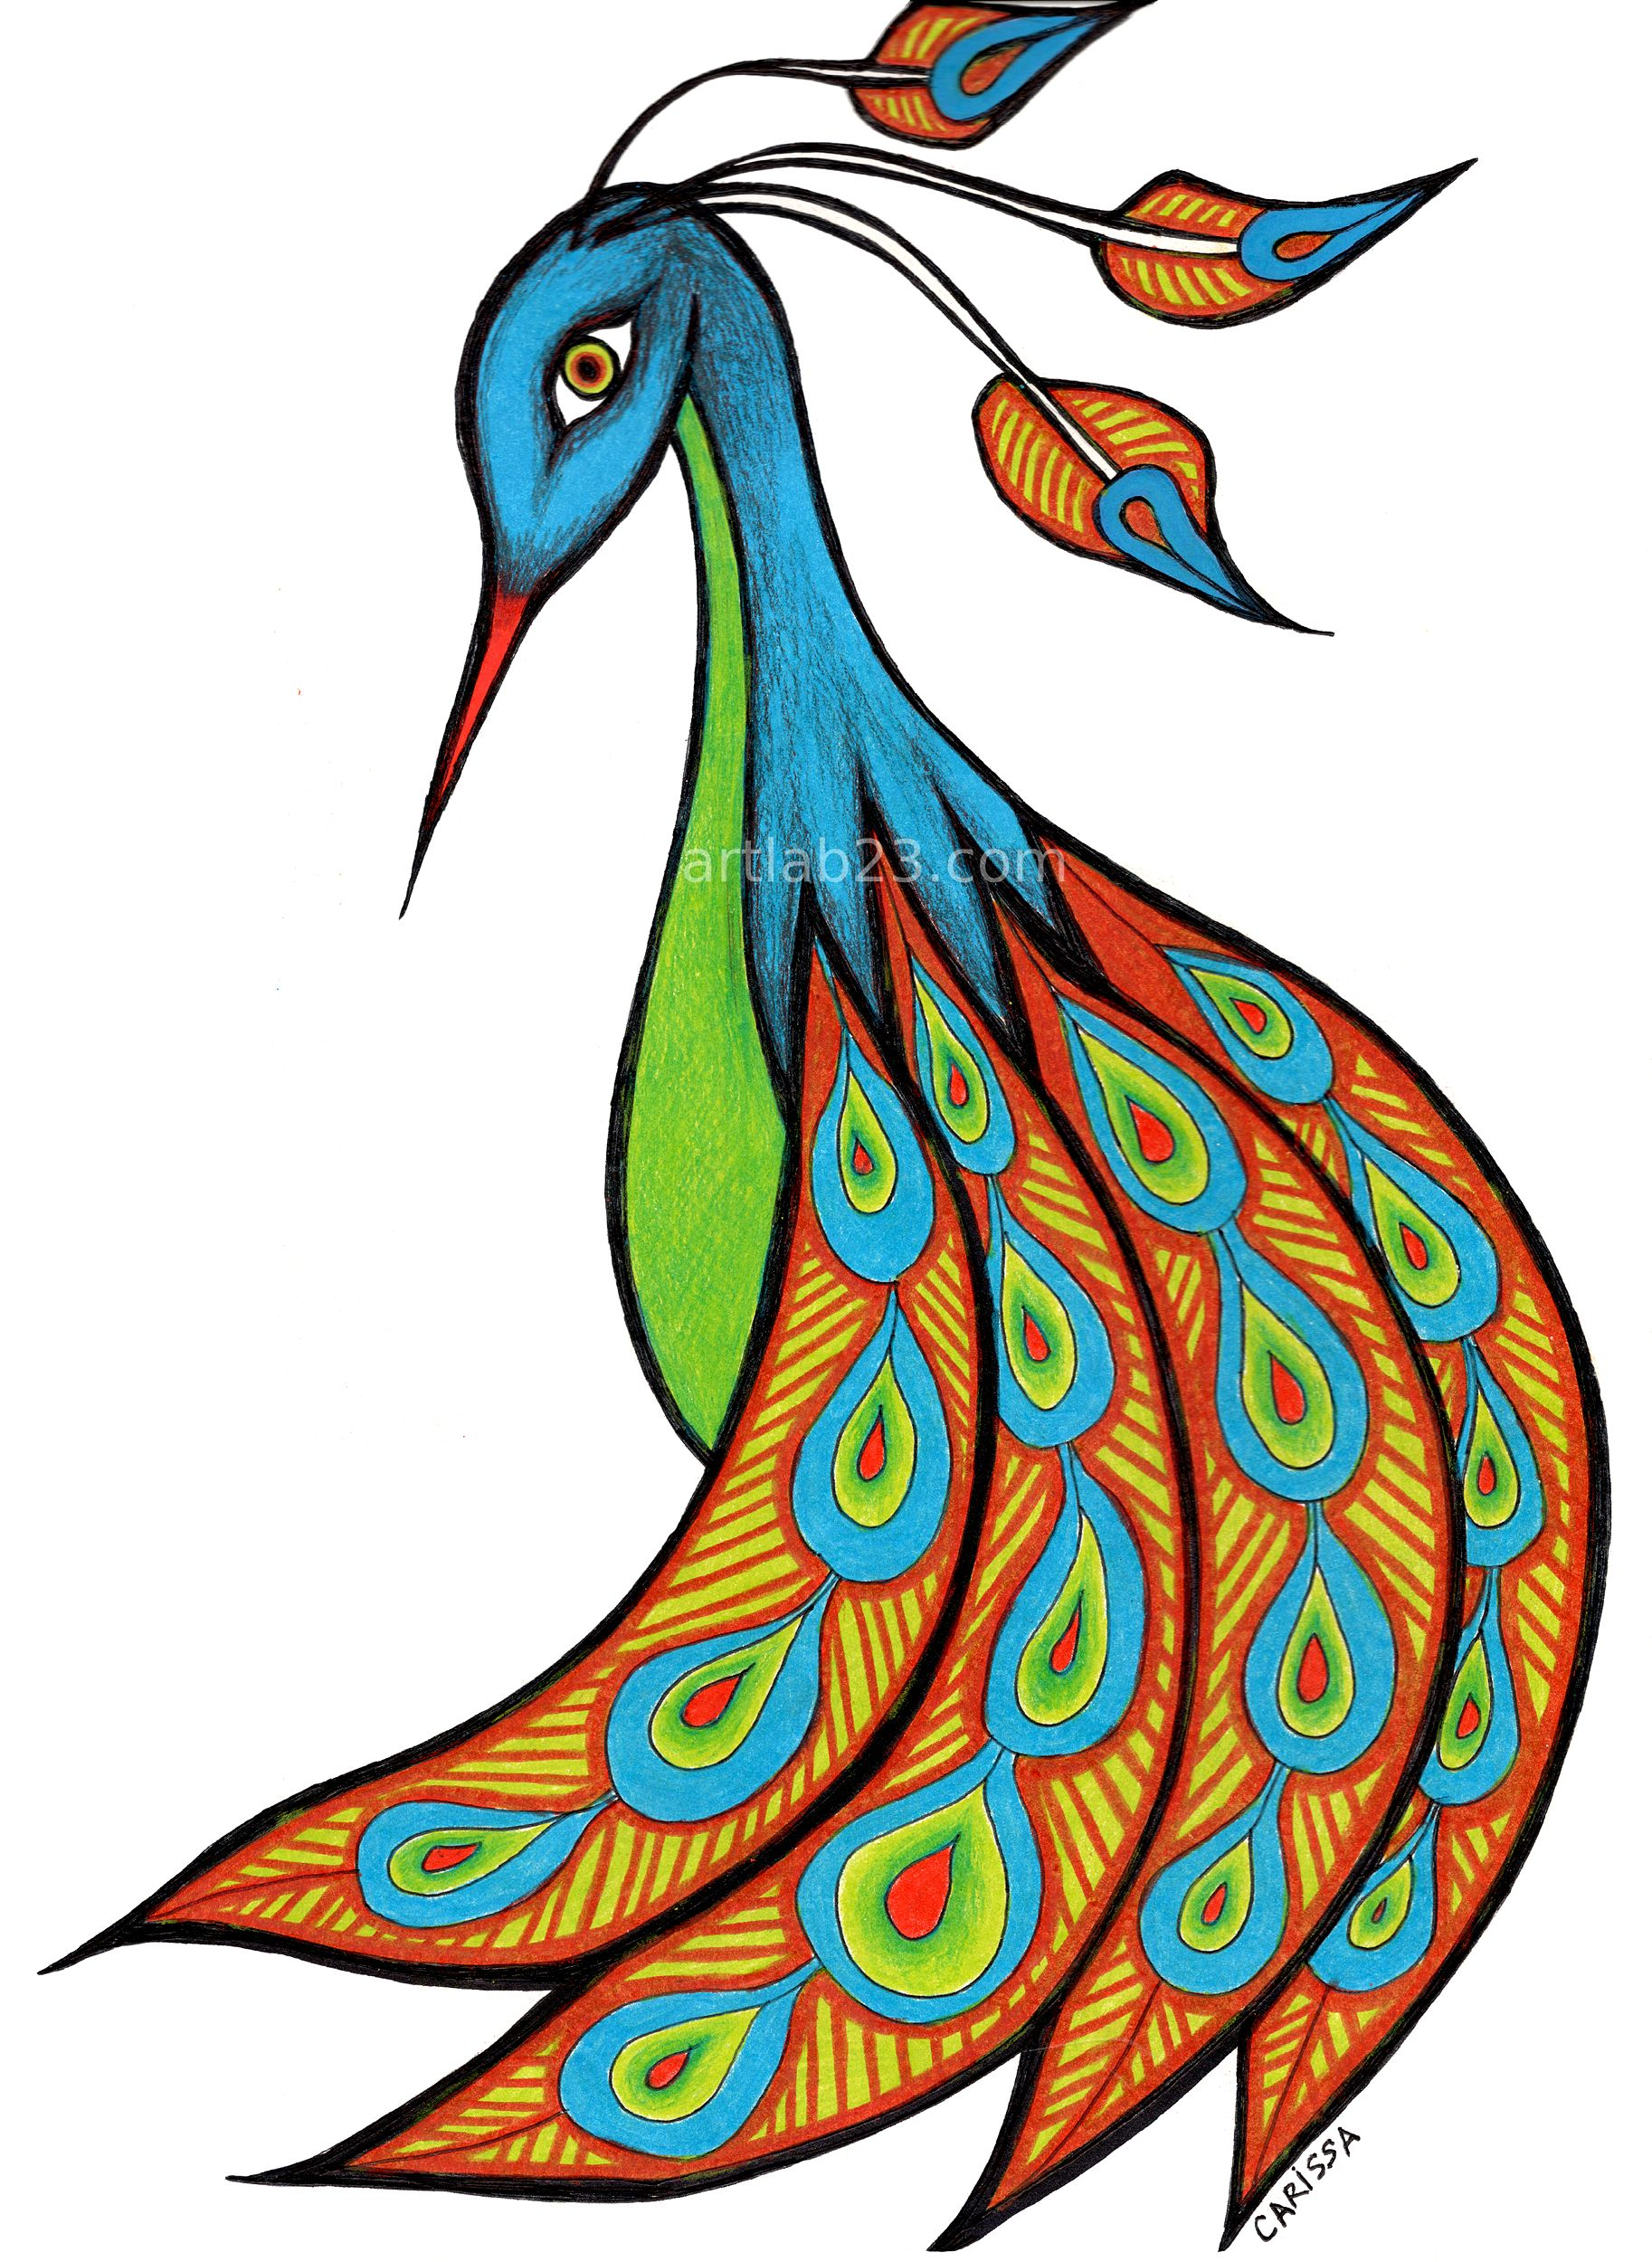 Simple Colorful Peacock Drawing at GetDrawings com | Free for